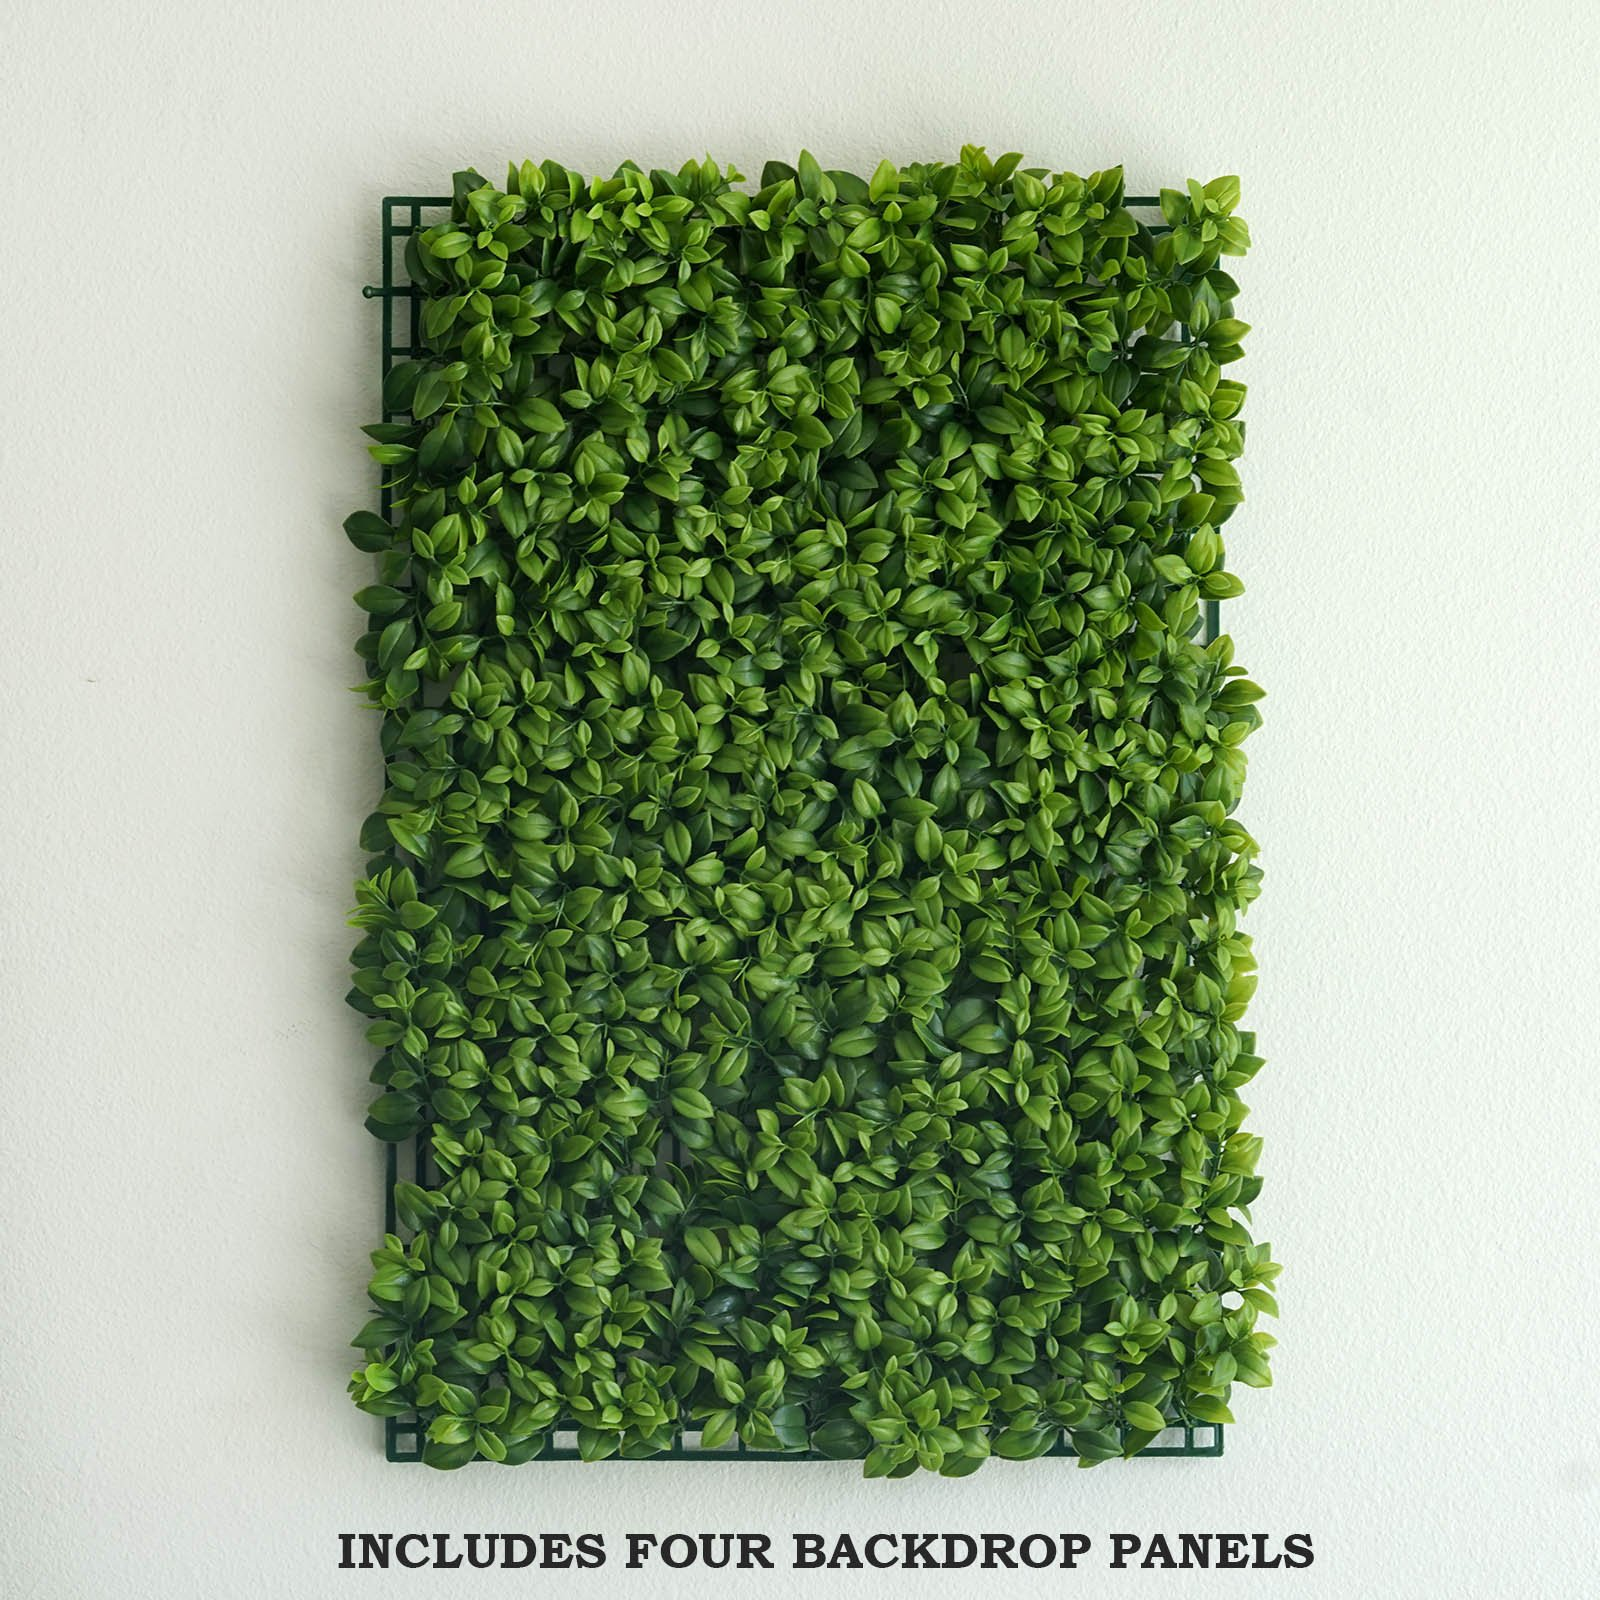 6x4ft Green Ivy Wall Vinyl Photography Background Ivy Covered Window Wall Wedding Backdrop Party Decoration Banner Photo Studio Prop